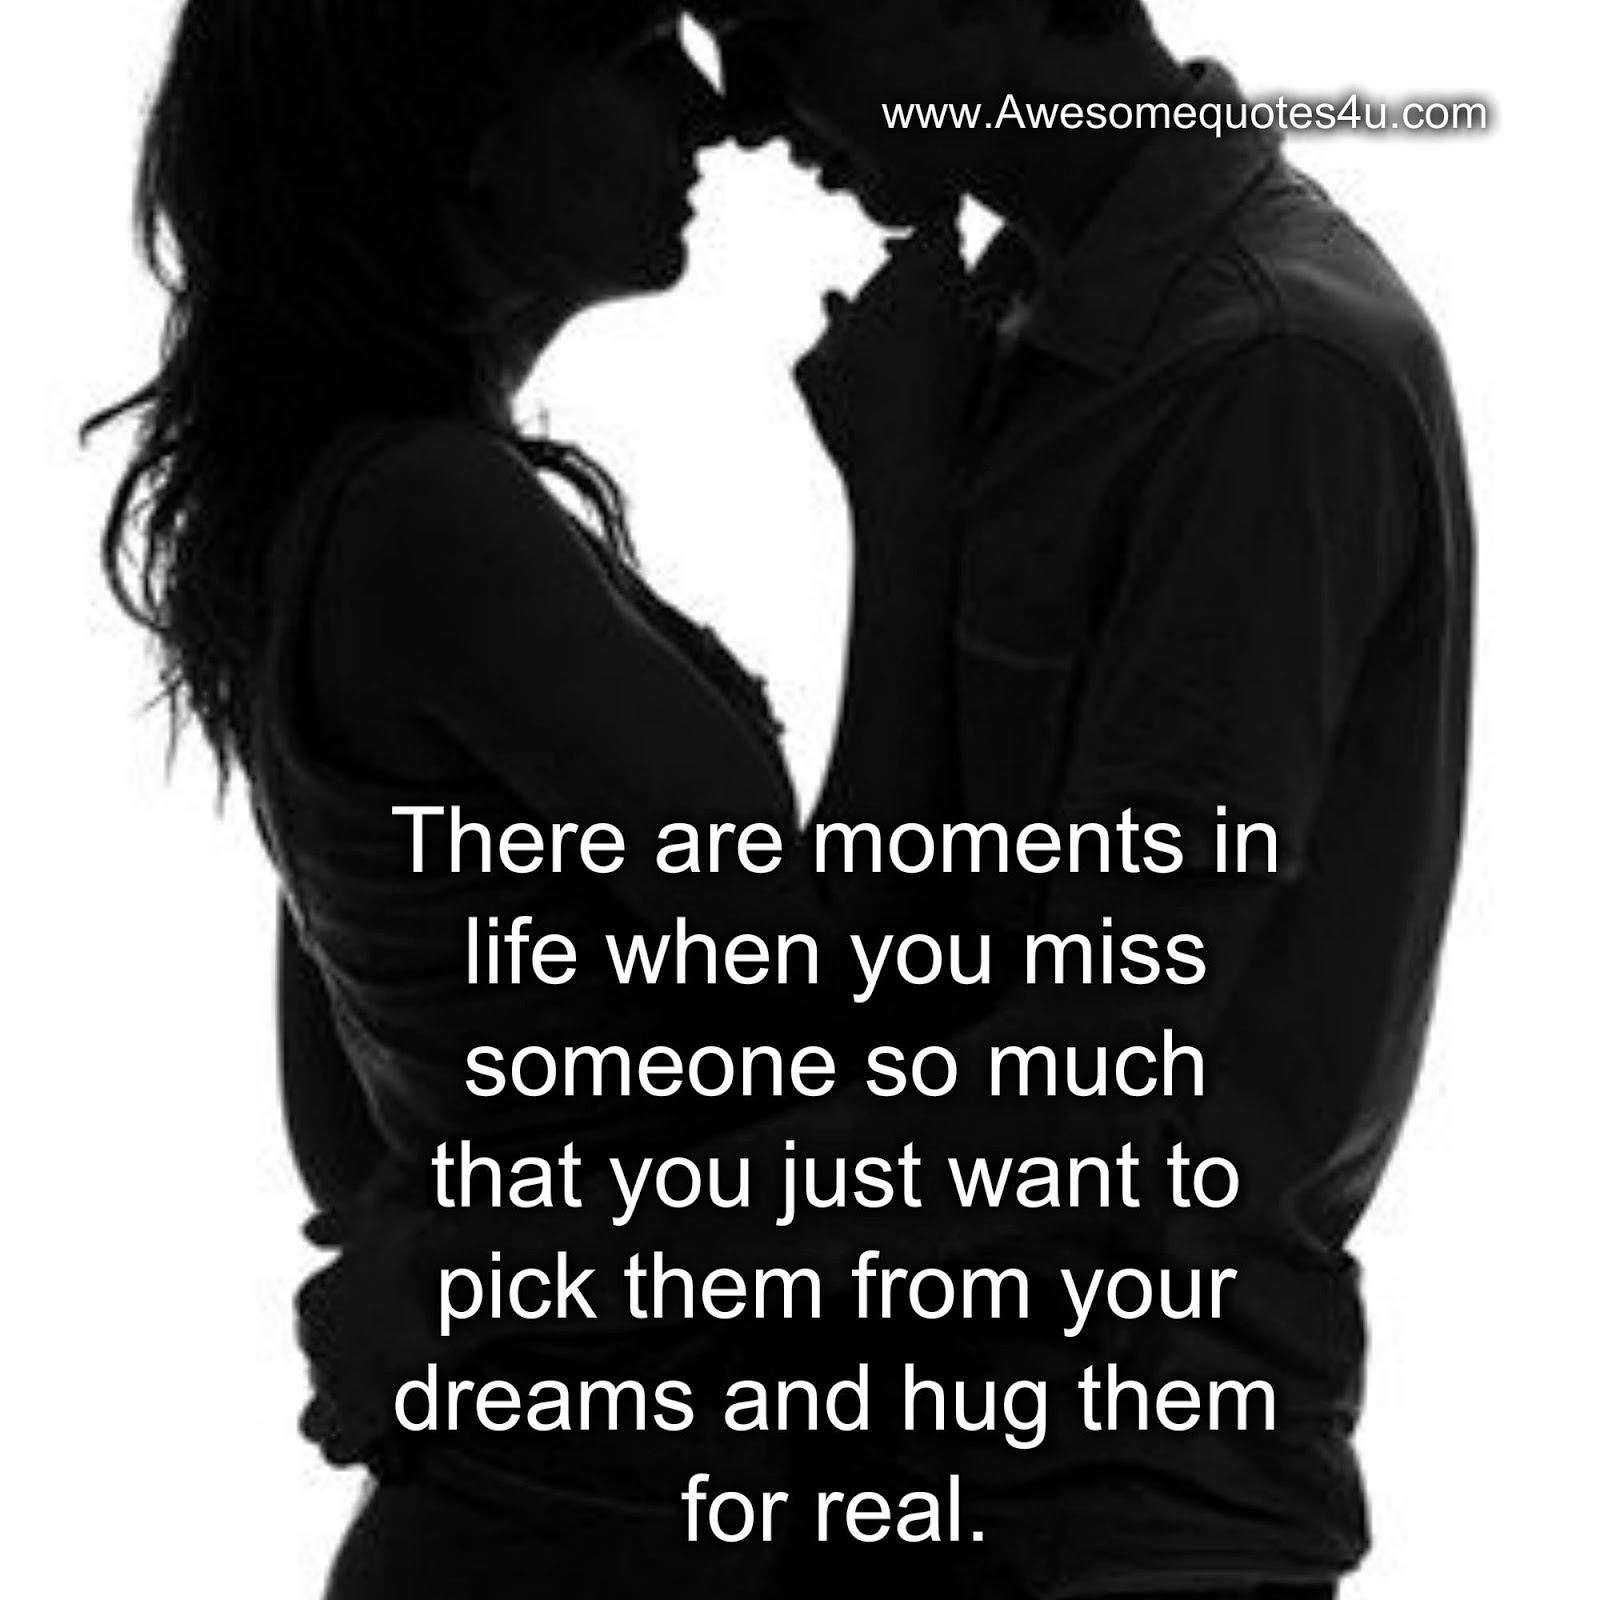 Awesome Quotes: When you miss someone so much